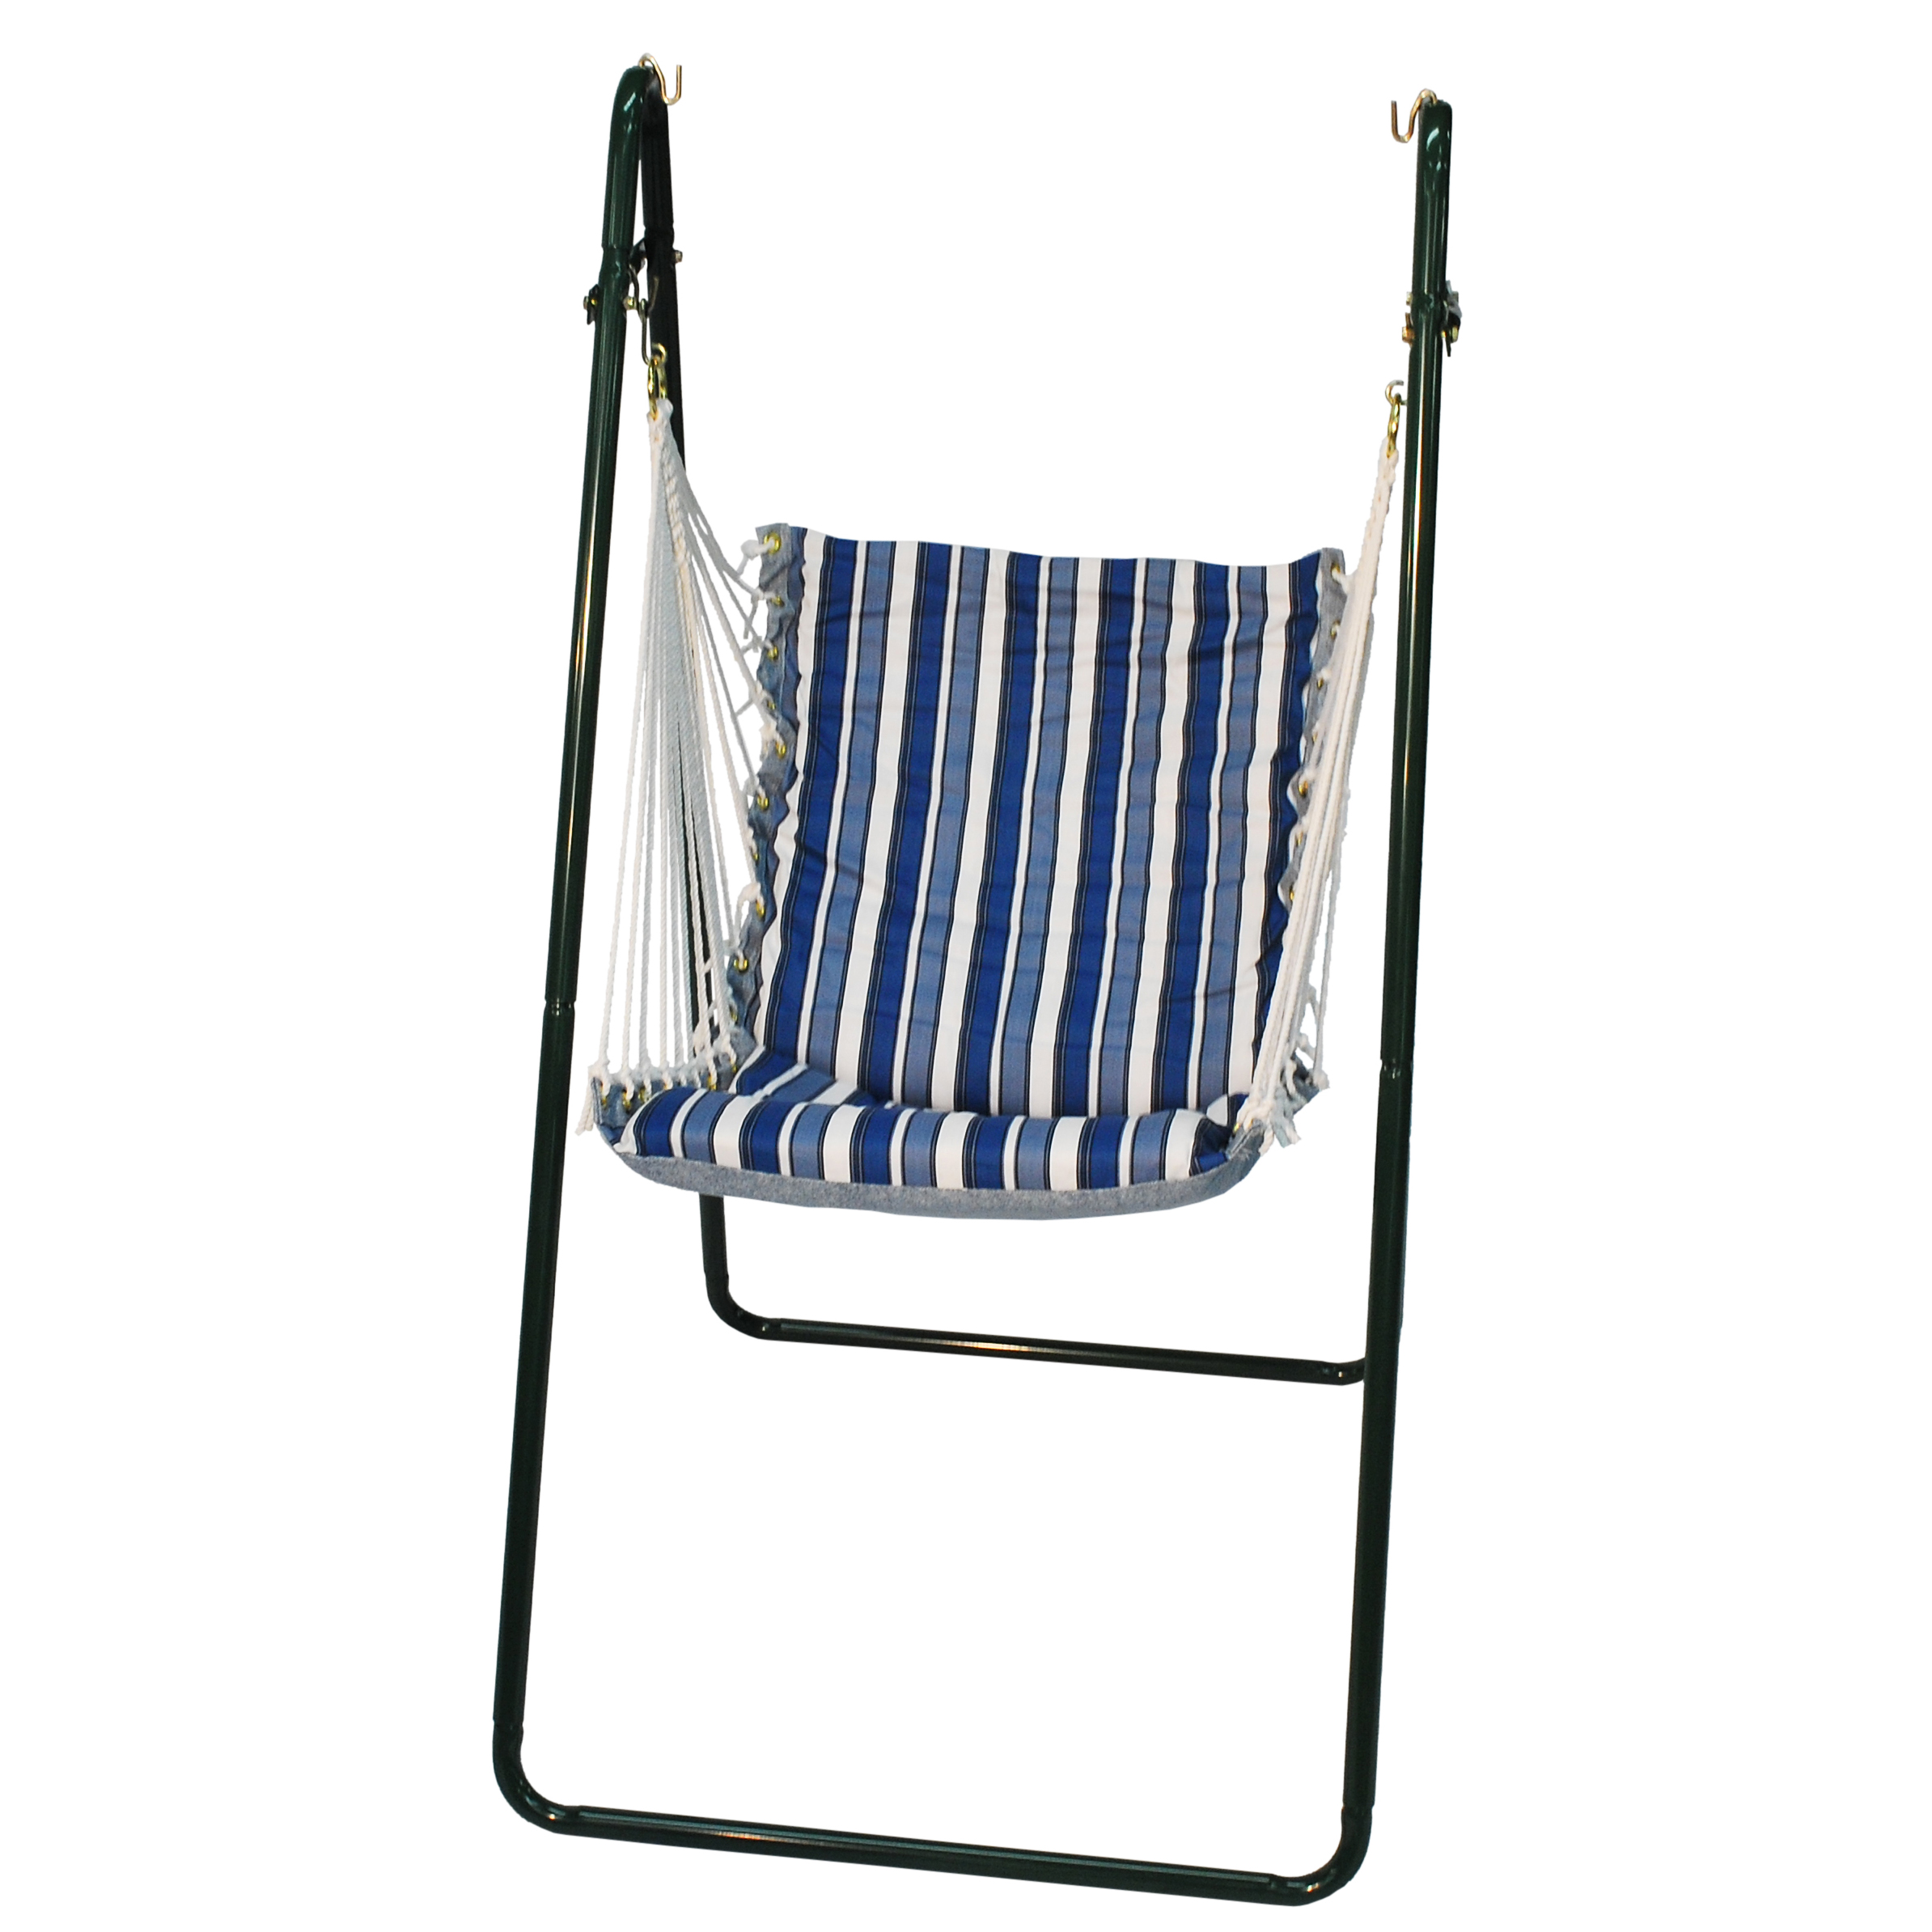 Swing Chair and Stand Combination, Tropical Palm Stripe Blue/Norway Powder Blue